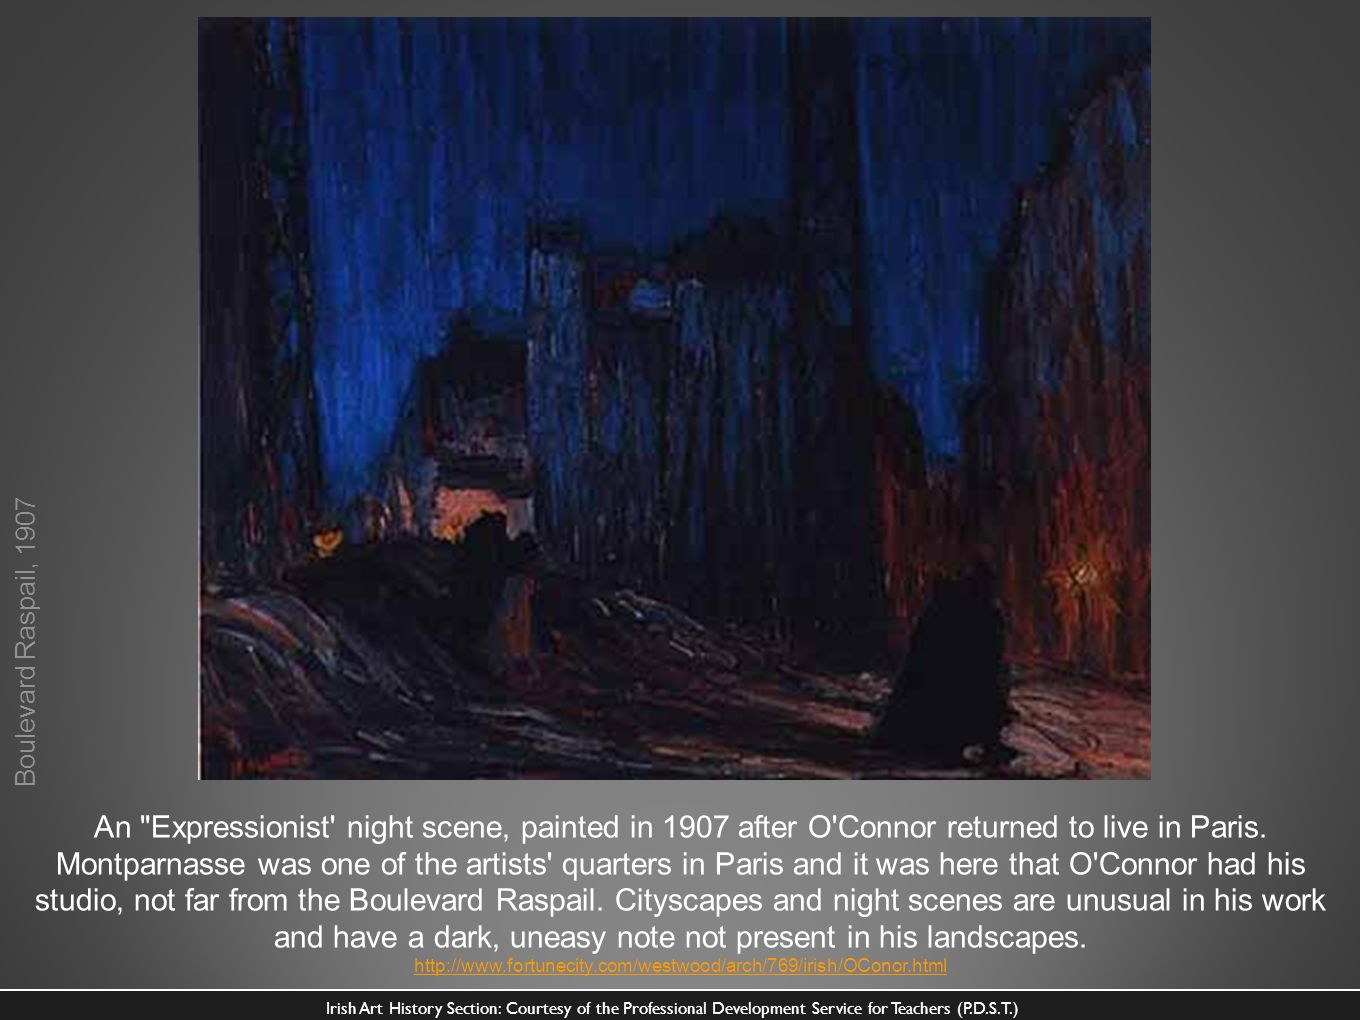 An Expressionist night scene, painted in 1907 after O Connor returned to live in Paris. Montparnasse was one of the artists quarters in Paris and it was here that O Connor had his studio, not far from the Boulevard Raspail. Cityscapes and night scenes are unusual in his work and have an ominous, uneasy note not present in his landscapes. He still uses the thick stripy brush strokes of his Breton period. The night blue of the sky is striking, but the other colours are more murky. The muddy colours, the cranes and derelict buildings, the sad yellow street lights, and the dark figures, give a feeling of loneliness and urban desolation. The silhouetted couple on the waste ground could be reminiscent of Munch